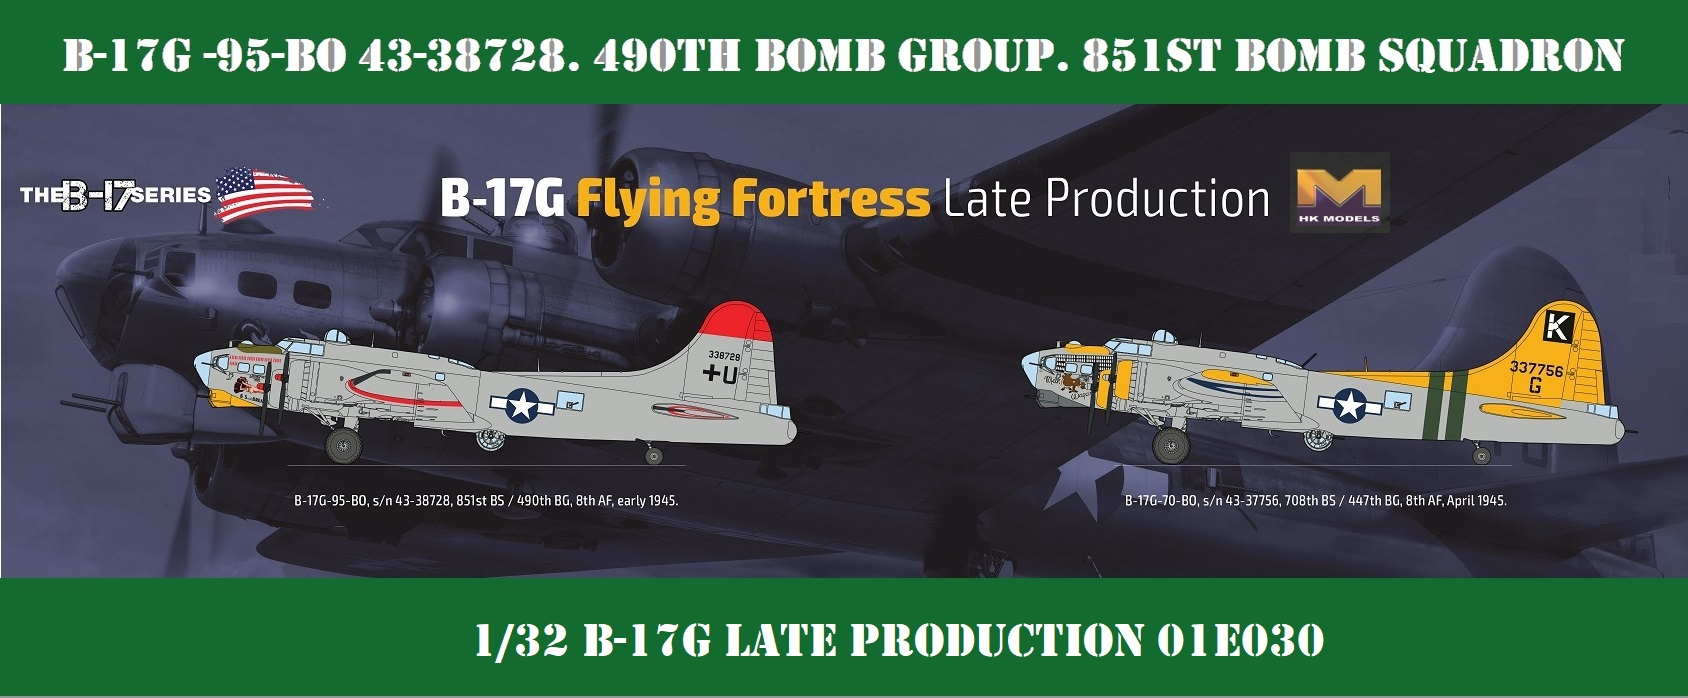 Kuvahaun tulos haulle hong kong model Description  Flying Fortress (Late Production)  The Boeing B-27 'Flying Fortress' was one of the U.S.A.'s main four-engine heavy bombers, operating alongside the b-24 Liberator, and the later B-29 Superfortress, in all theatres of World War 2. It's a fact that the B-17 almost never saw its place in history and the defeat of Nazi Germany, as the prototype, know as Model 299, crashed due to pilot error during its evaluation in October 1935. Thankfully, the design had shown such promise during the testing phase, in fact, far exceeding the requirements of the original specification, that further prototypes were ordered despite Boeing losing the original contract with the United States Army Air Corps. It was this further evaluation that saw the type enter active service in 1938. The actual name 'Flying Fortress' was coined by a newspaper hack who witnessed a roll-out of the machine, bristling with guns and turrets, and Boeing realised that this was the sort of propaganda they needed, and trademarked the name. After the initial prototypes, serial production of the B-17 began with the B-17B variant, and underwent a major revision with the introduction of the 'E'. This type featured a substantially redesigned tail and fillet that featured throughout subsequent versions, giving the B-17 its iconic profile. An extra 10ft of length was added to the fuselage. Other refinements included the additional of a tail and dorsal turret, and the addition of a Bendix turret to replace the fixed bathtub type that had graced previous versions. This was found to be disappointing, and was eventually replaced with the Sperry ball turret that became a permanent feature of all further marques.  Boeing 'G; incarnation of the Fort, was perhaps the most significant of all types built, and of course, numerous 'F' version modifications were carried over, such as the remotely operated Bendix chin turret that was introduced in the late block series of the 'F'. Dif